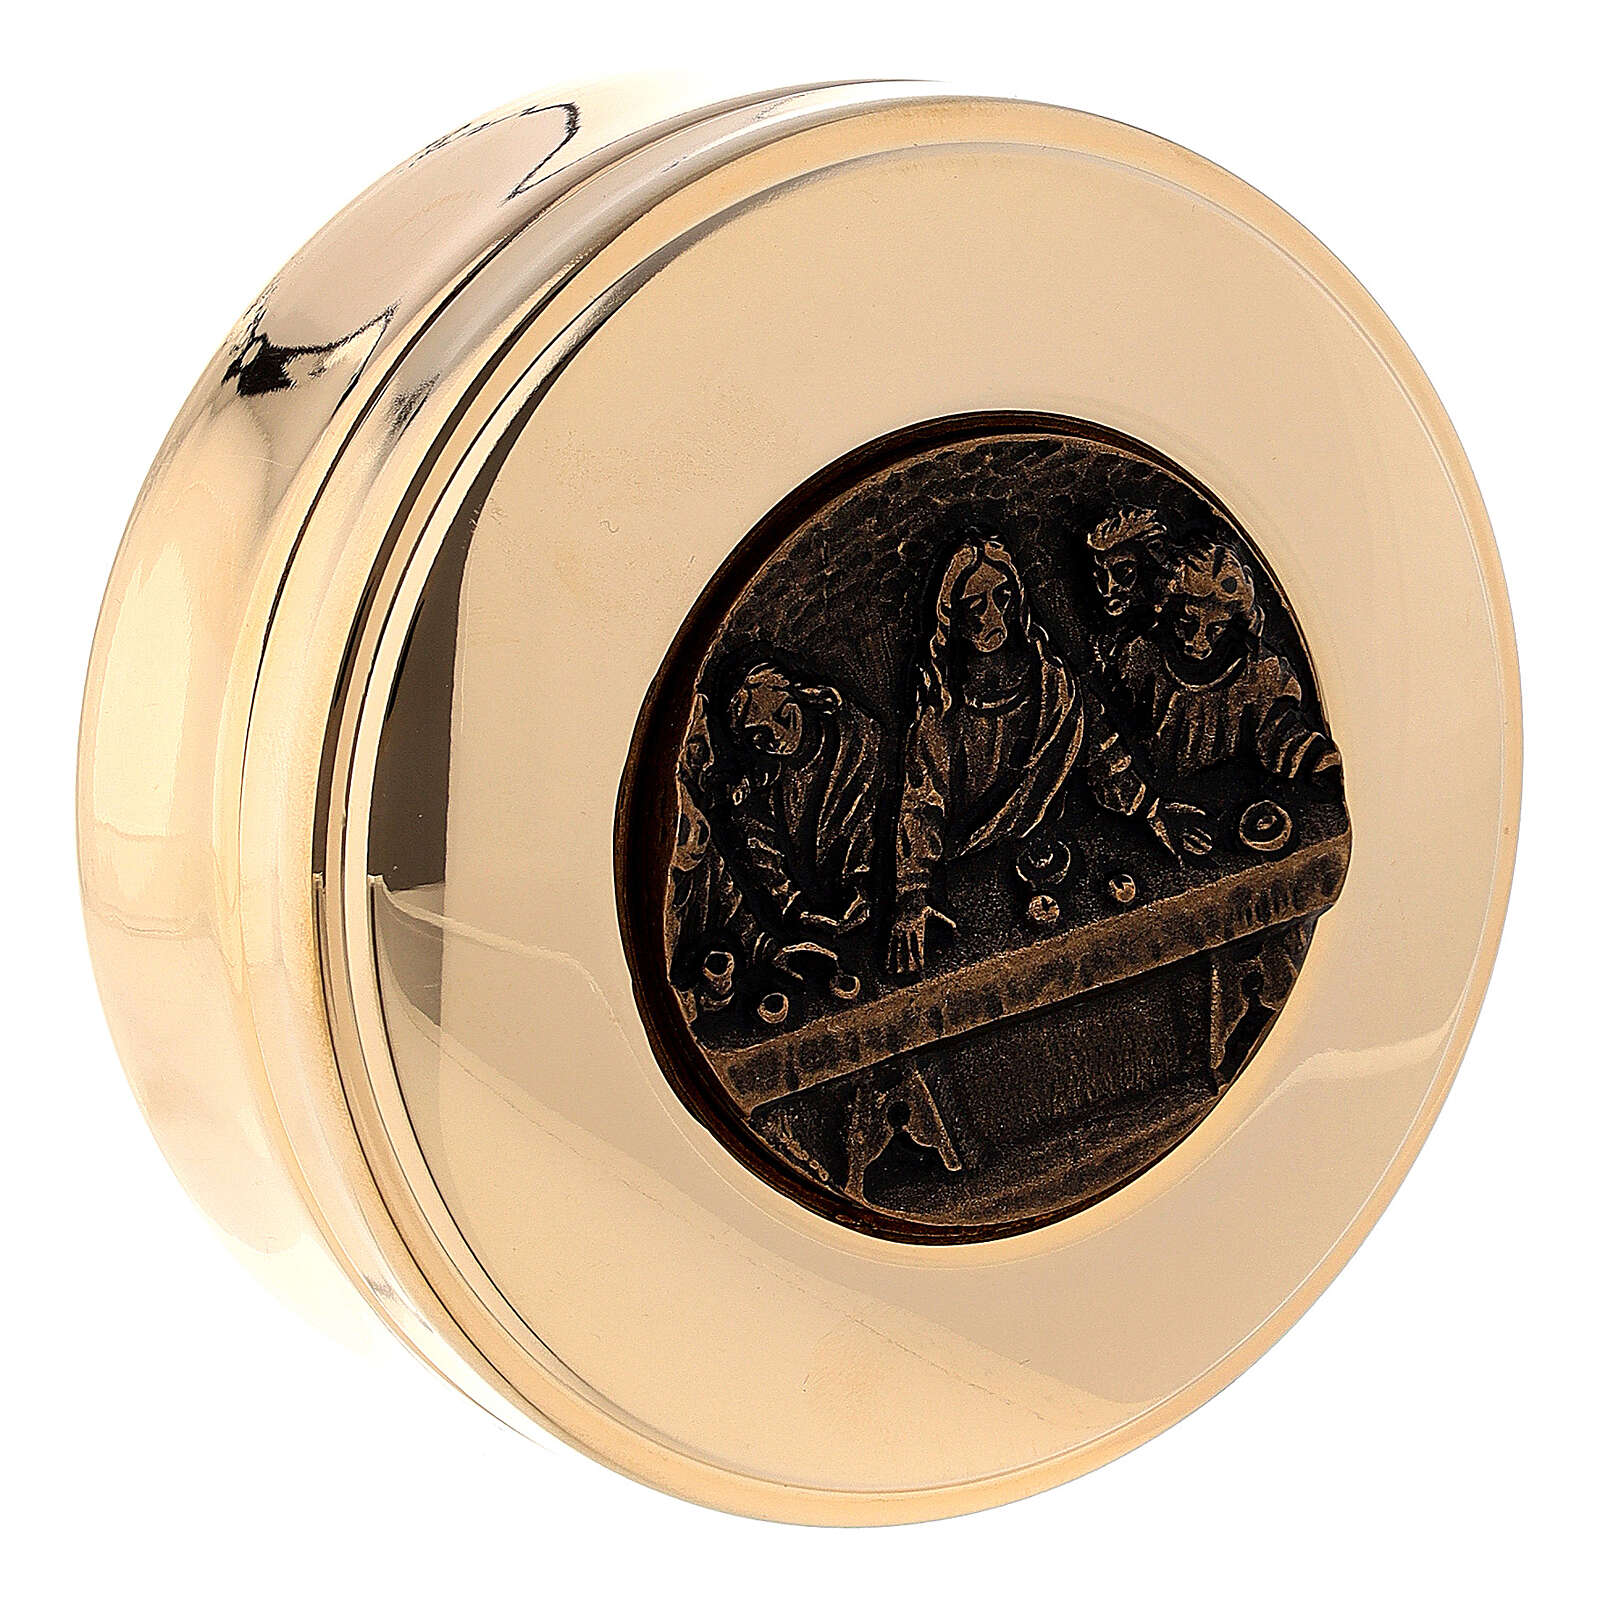 Last Supper pyx bronze plated plate 3 in diameter 3